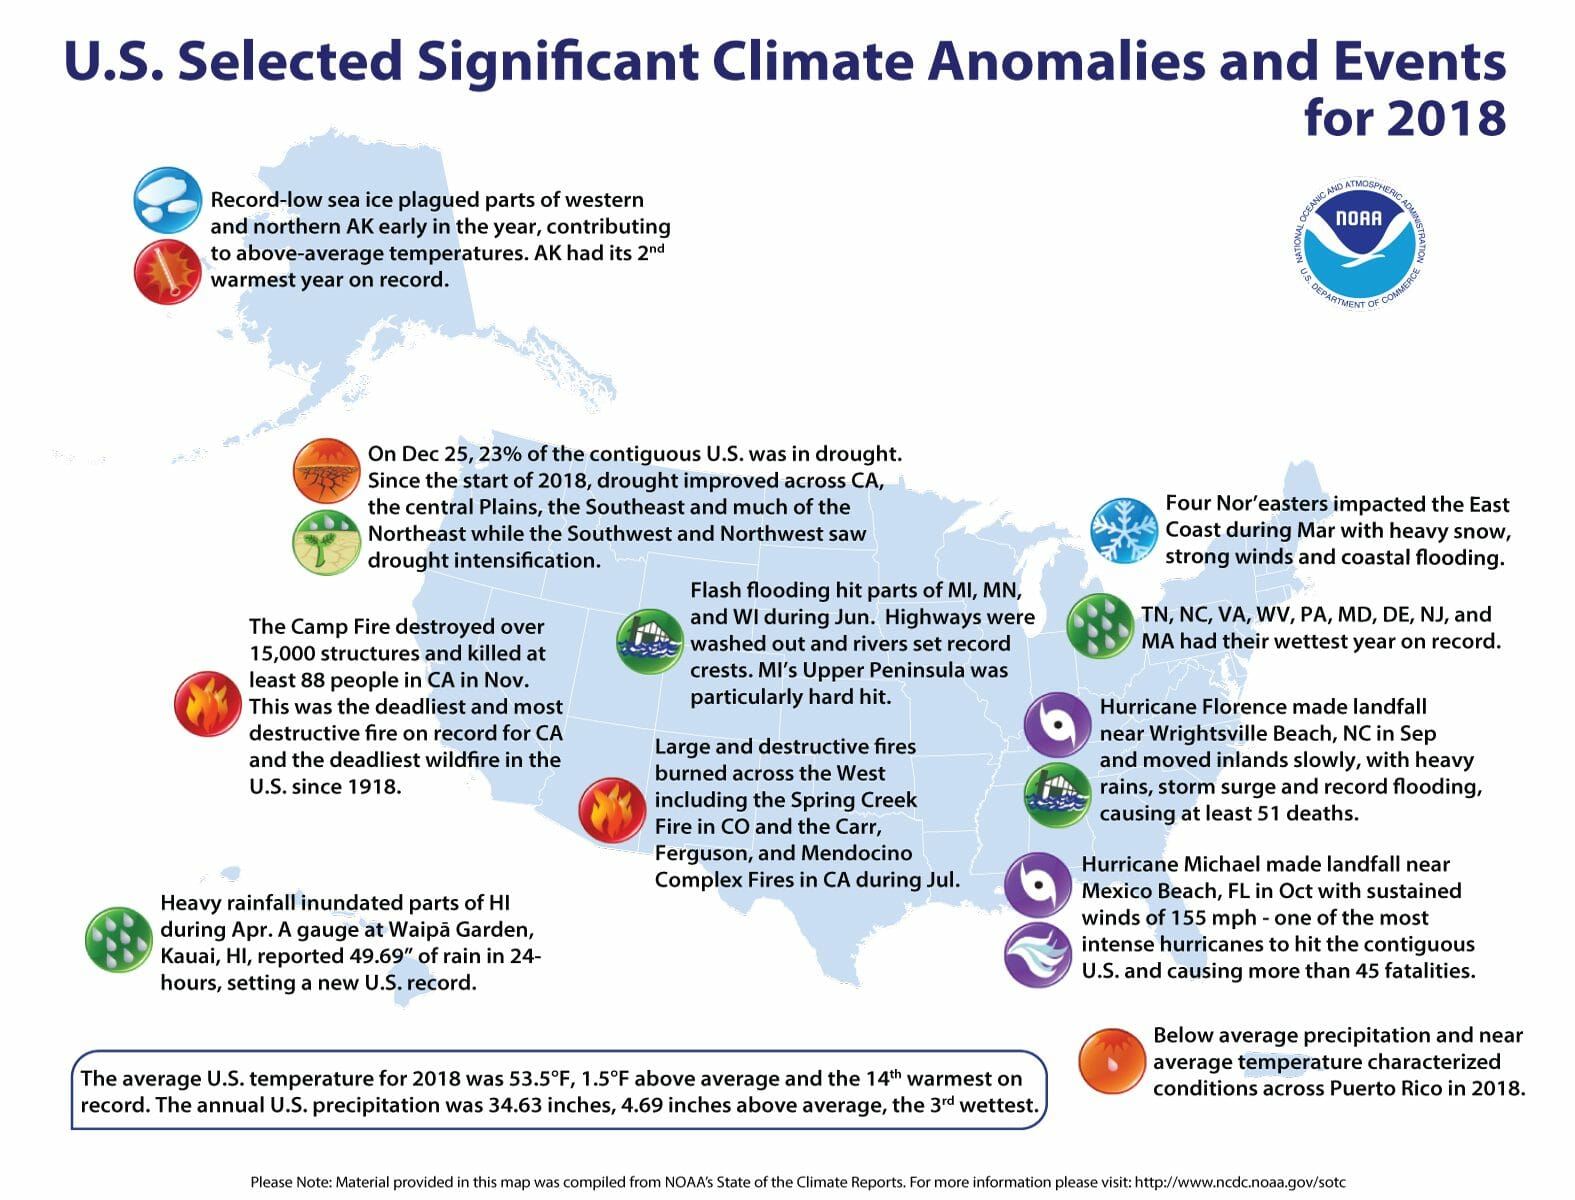 NOAA: The contiguous U.S. average annual temperature was 53.5°F, 1.5 ...